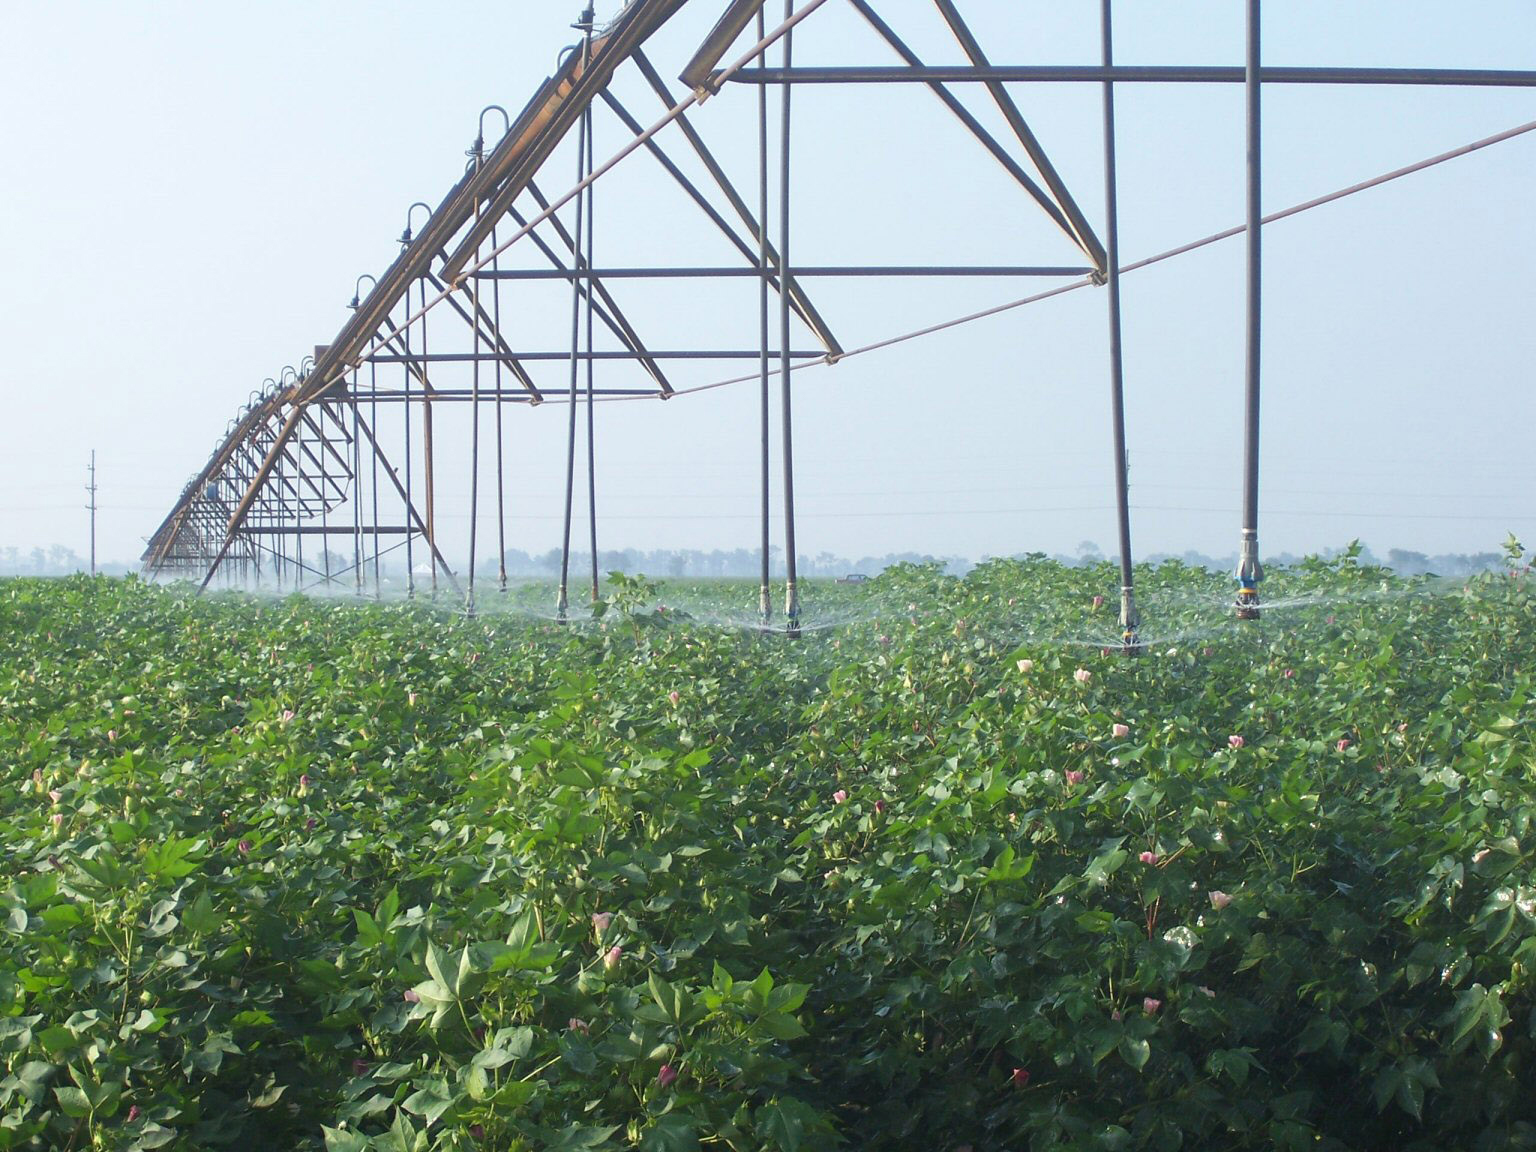 Georgia farmers will need 20 percent more water to grow their crops in the next four decades, according to a recent report by University of Georgia crop and weather experts.